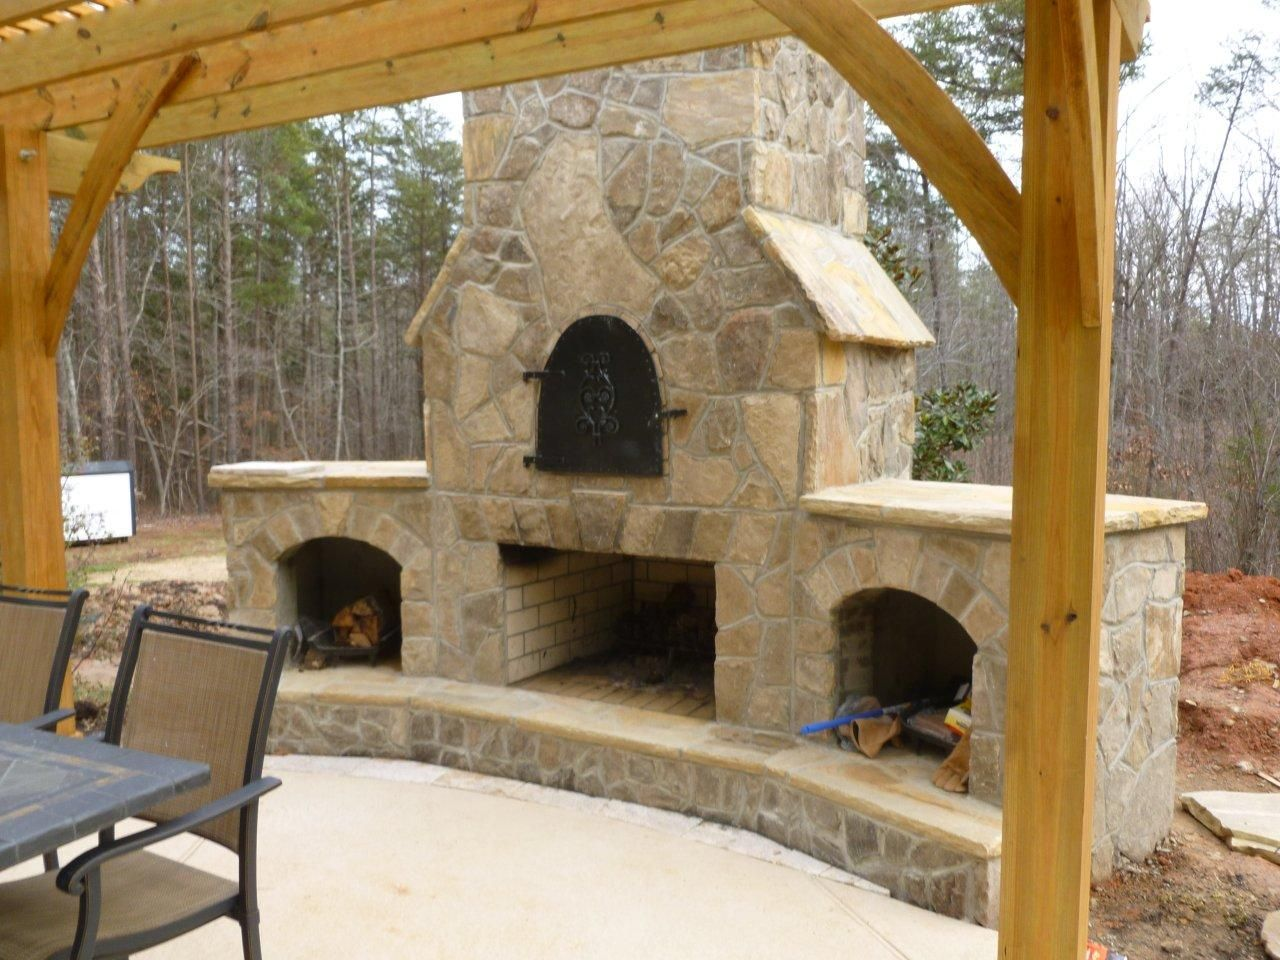 stone outdoor fireplace with a stone pizza oven and dry storage